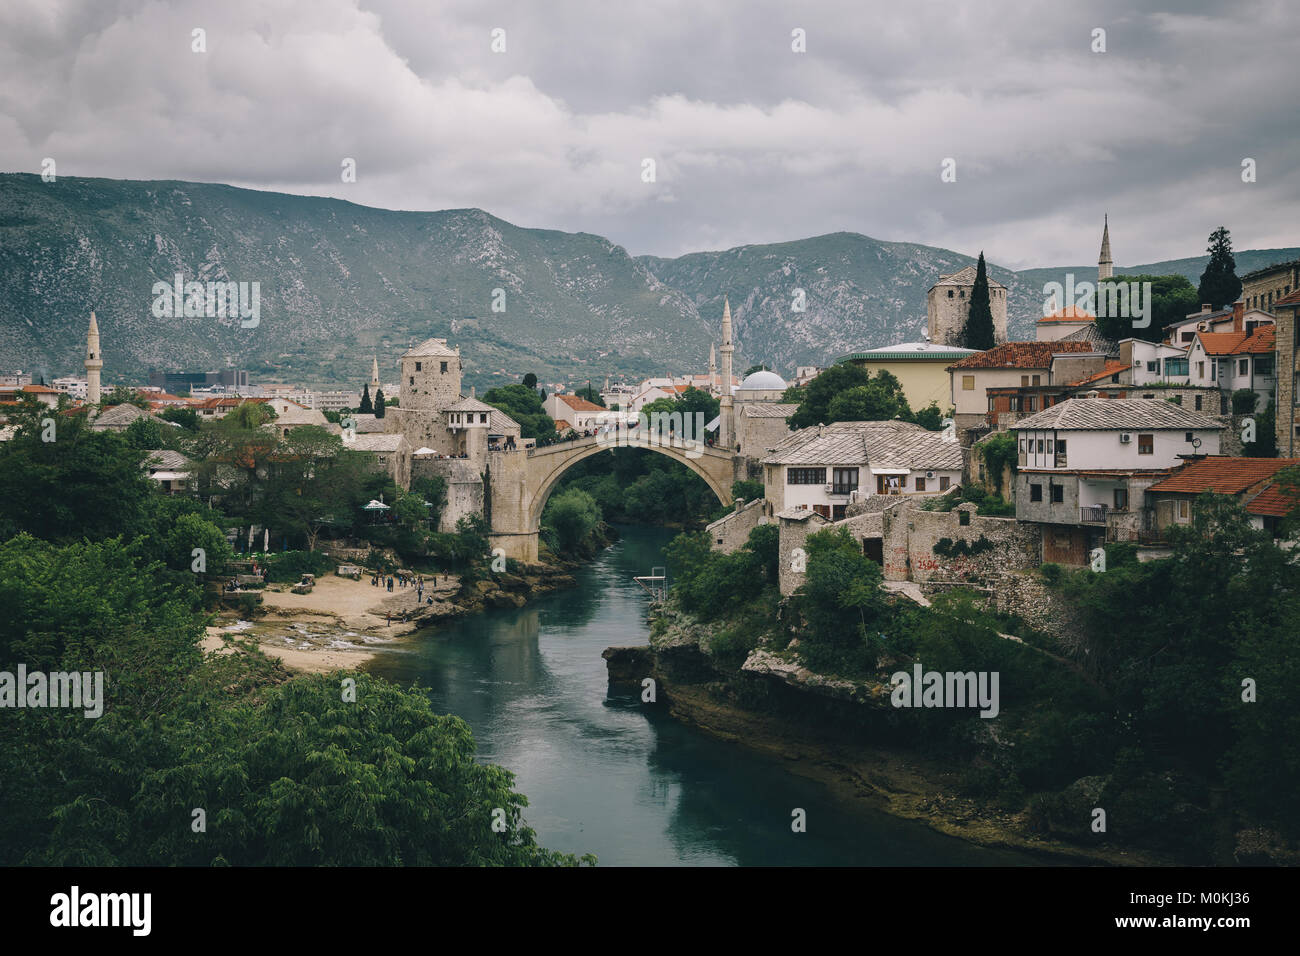 Classic view of the historic town of Mostar with famous Old Bridge (Stari Most) on a rainy day with dark clouds - Stock Image